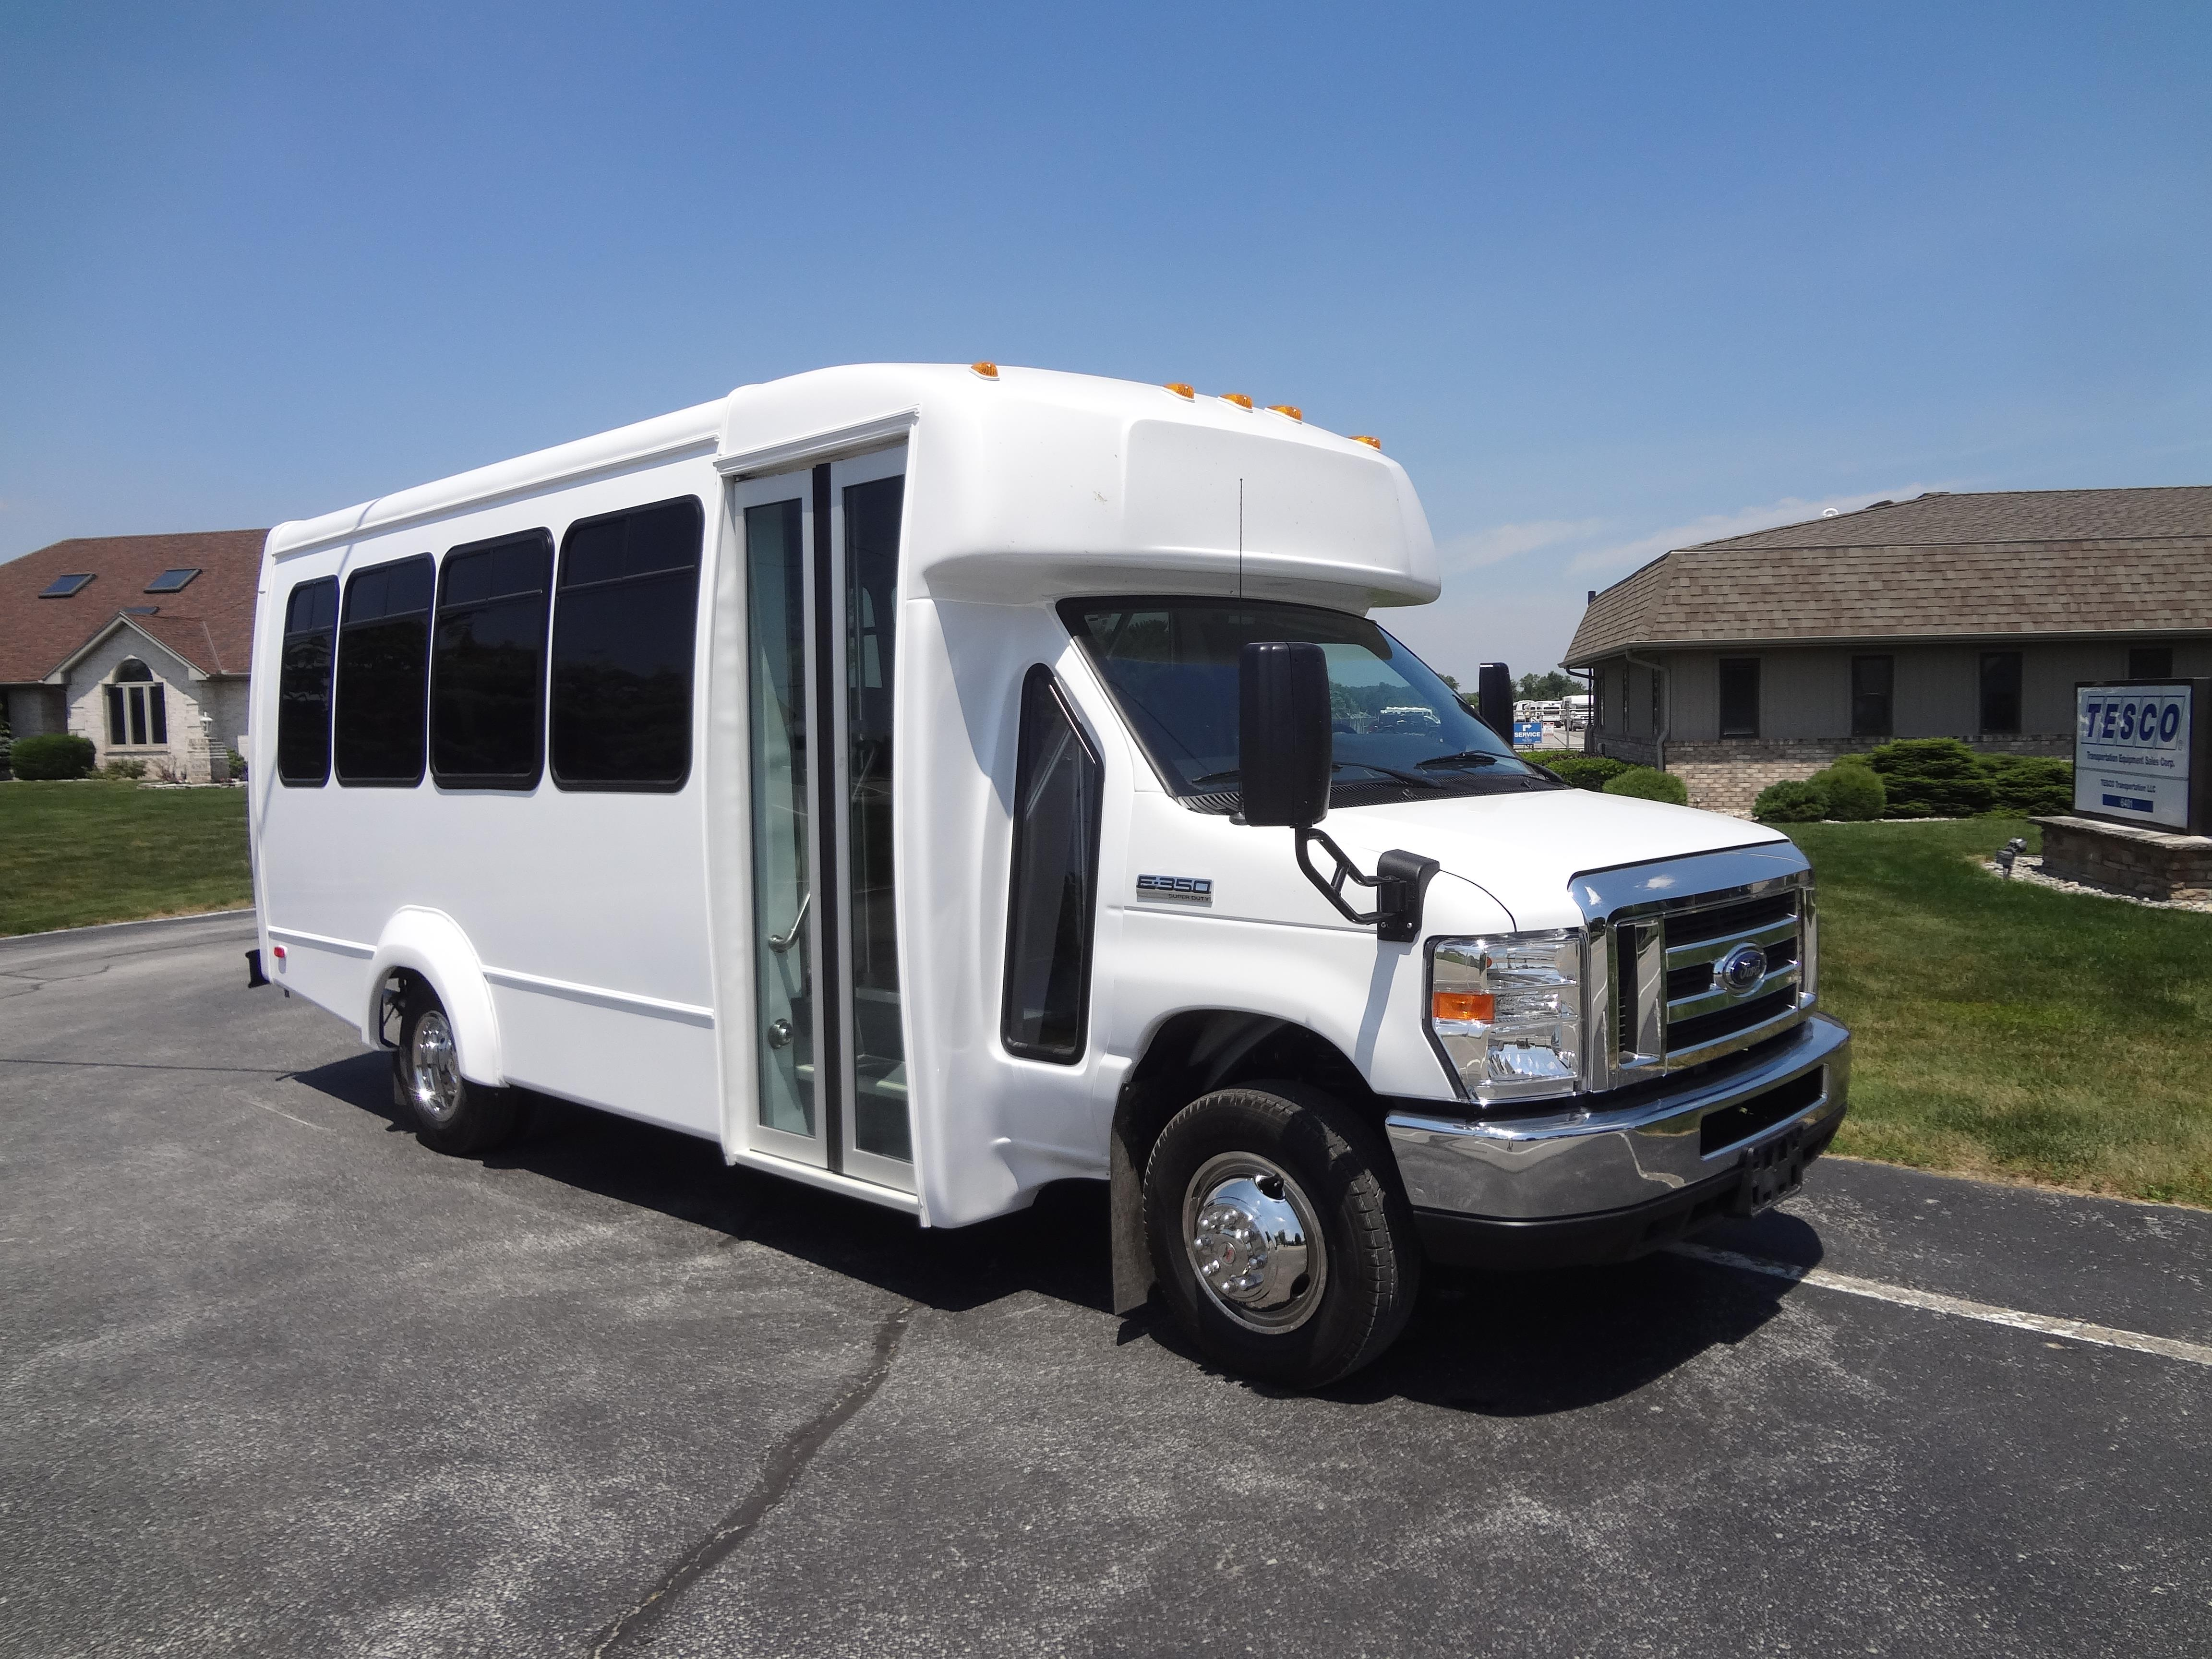 2020 elkhart coach ecii ford 14 passengers and 0 wheelchairs 2020 elkhart coach ecii ford 14 passengers and 0 wheelchairs